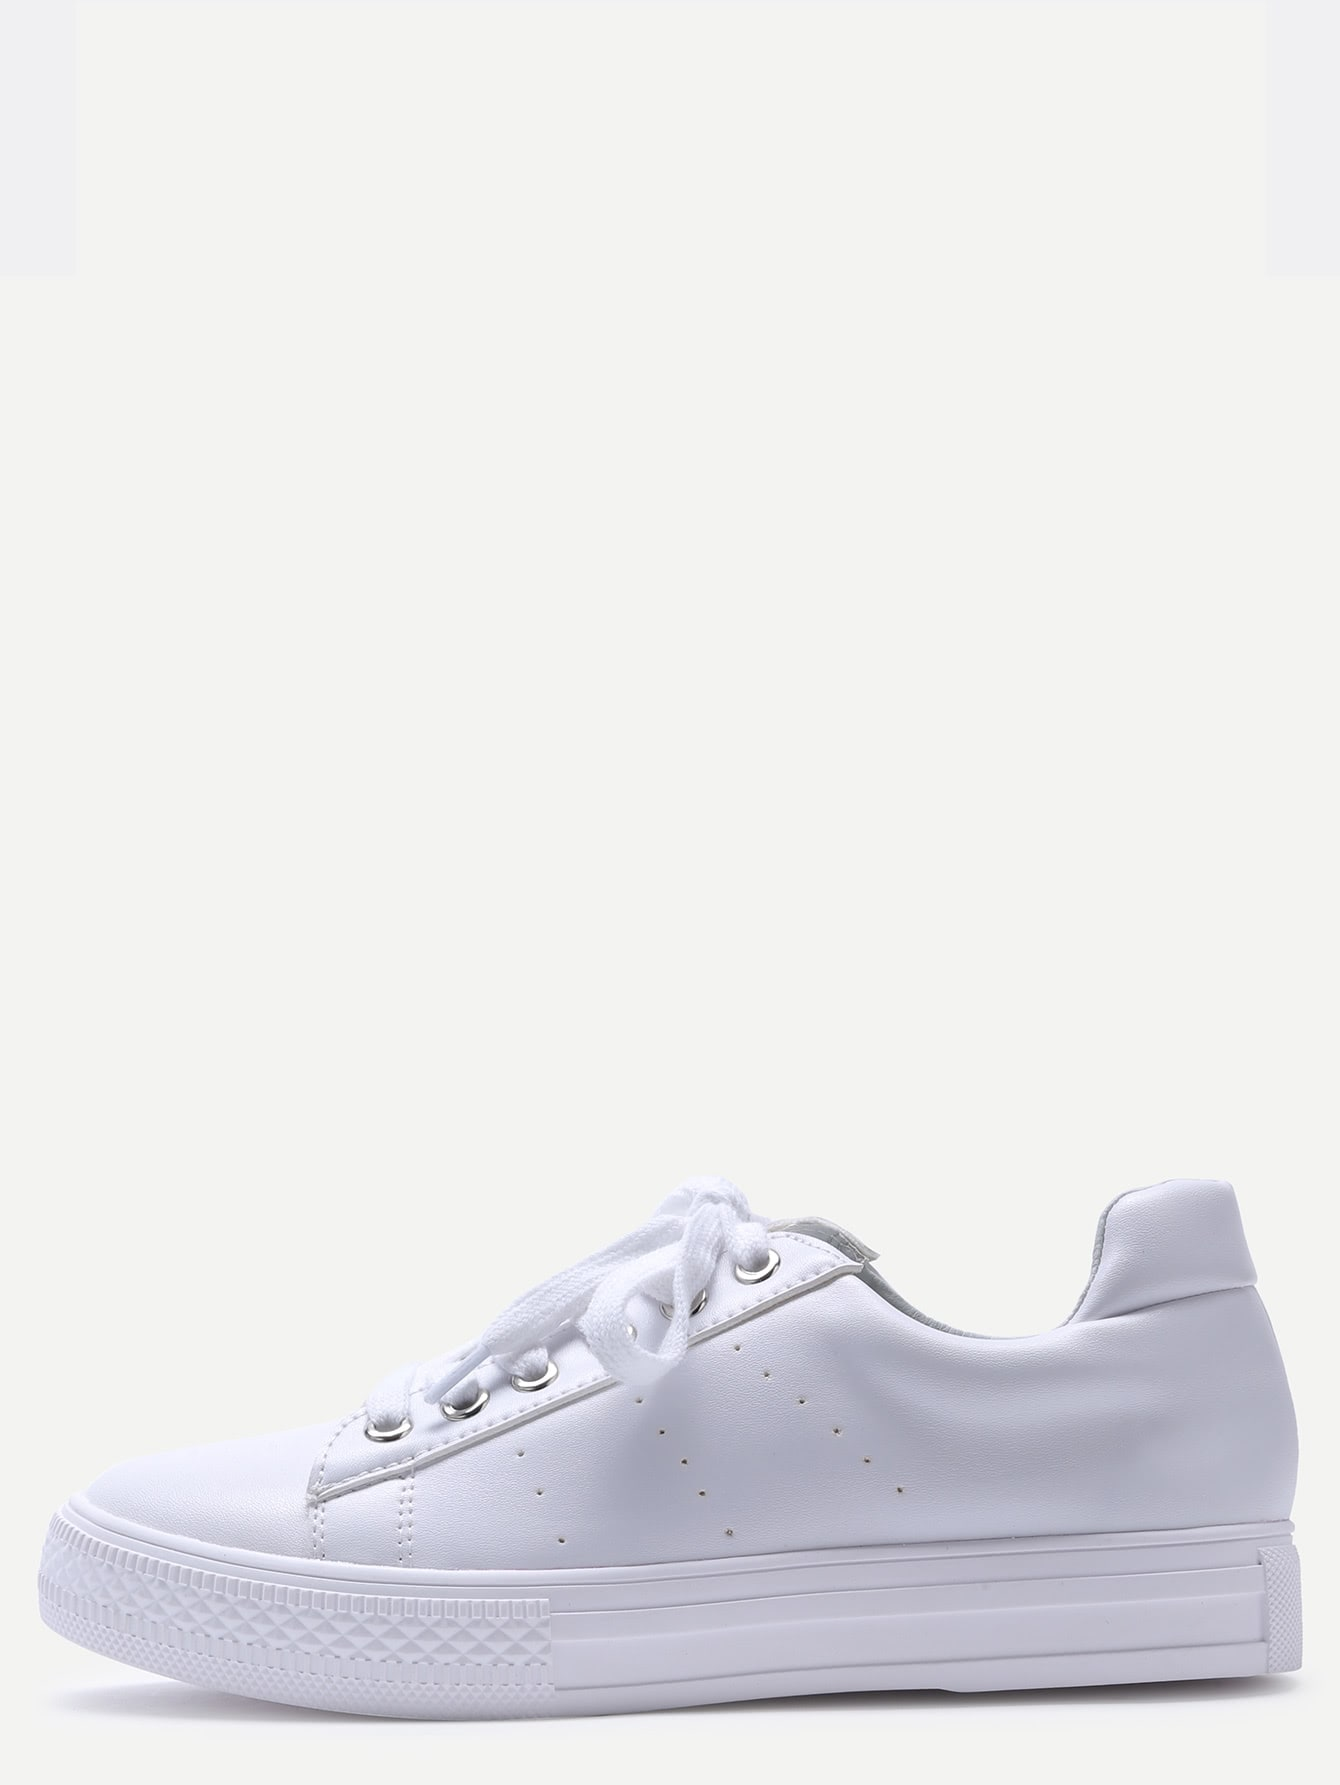 White Breathable Rubber Sole Low Top SneakersWhite Breathable Rubber Sole Low Top Sneakers<br><br>color: White<br>size: EUR35,EUR36,EUR37,EUR38,EUR39,EUR40